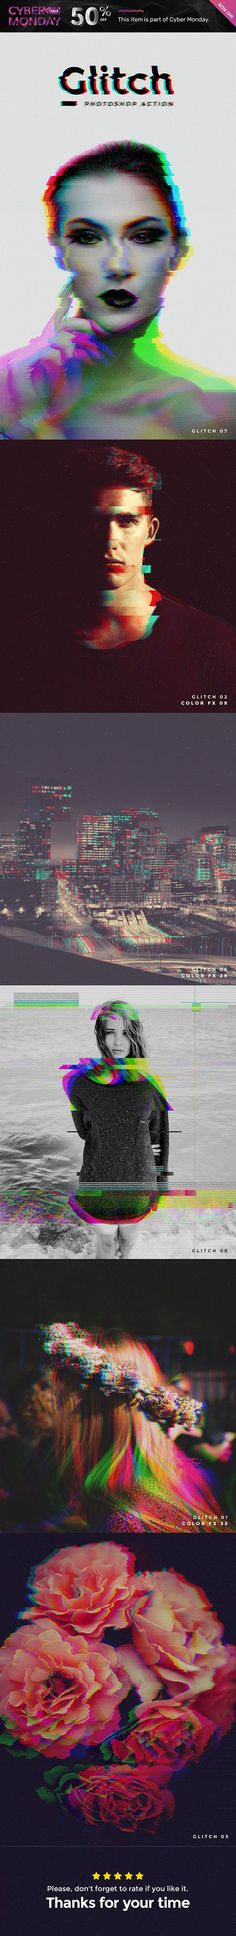 Glitch Photoshop Action — Photoshop ATN #broken #rgb • Available here → https://graphicriver.net/item/glitch-photoshop-action/19144570?ref=pxcr